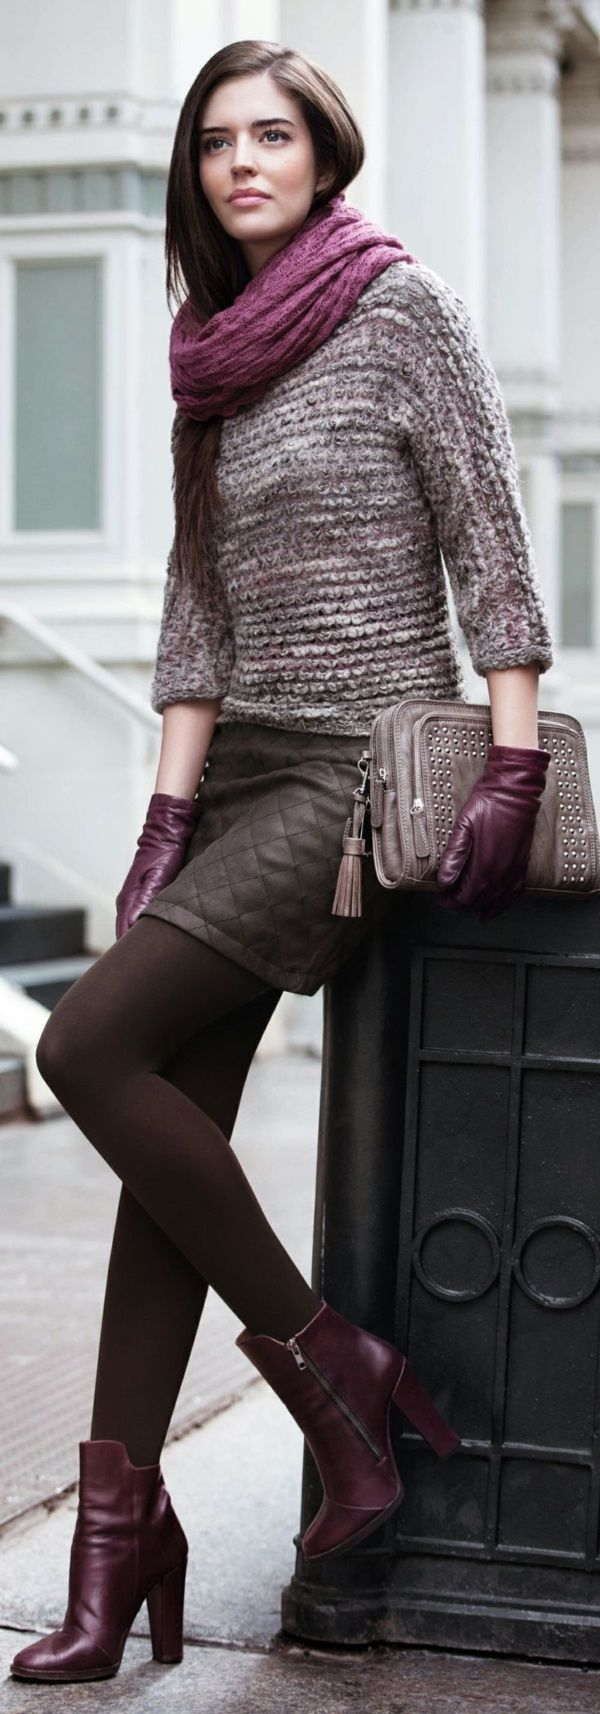 40 Sexy Winter Skirt Outfit Ideas - Fashion 2015